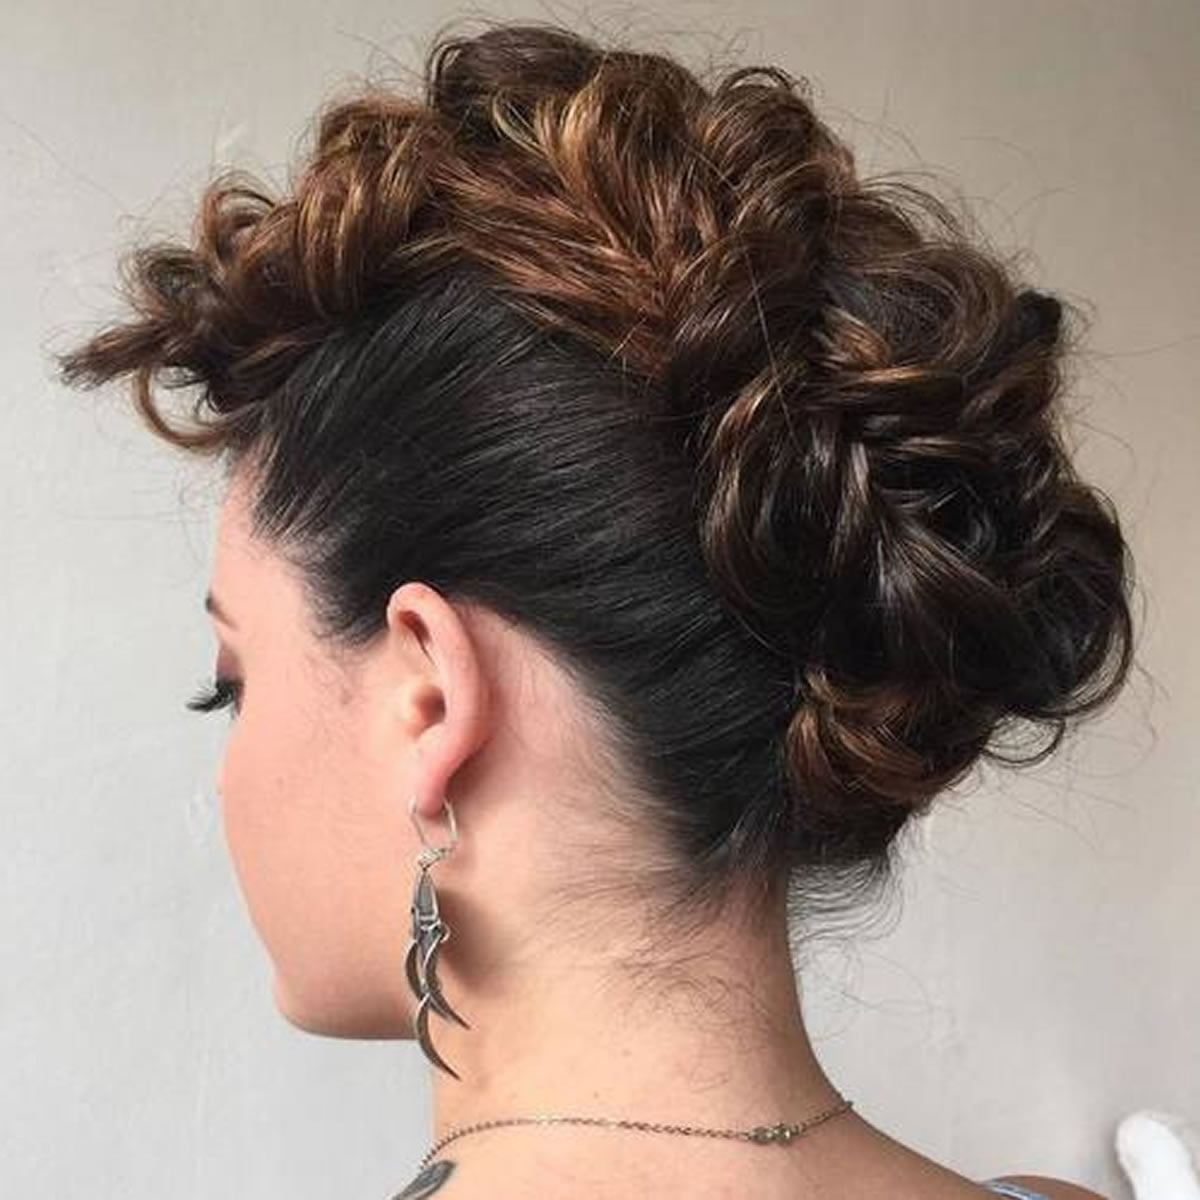 30 Glamorous Braided Mohawk Hairstyles For Girls And Women